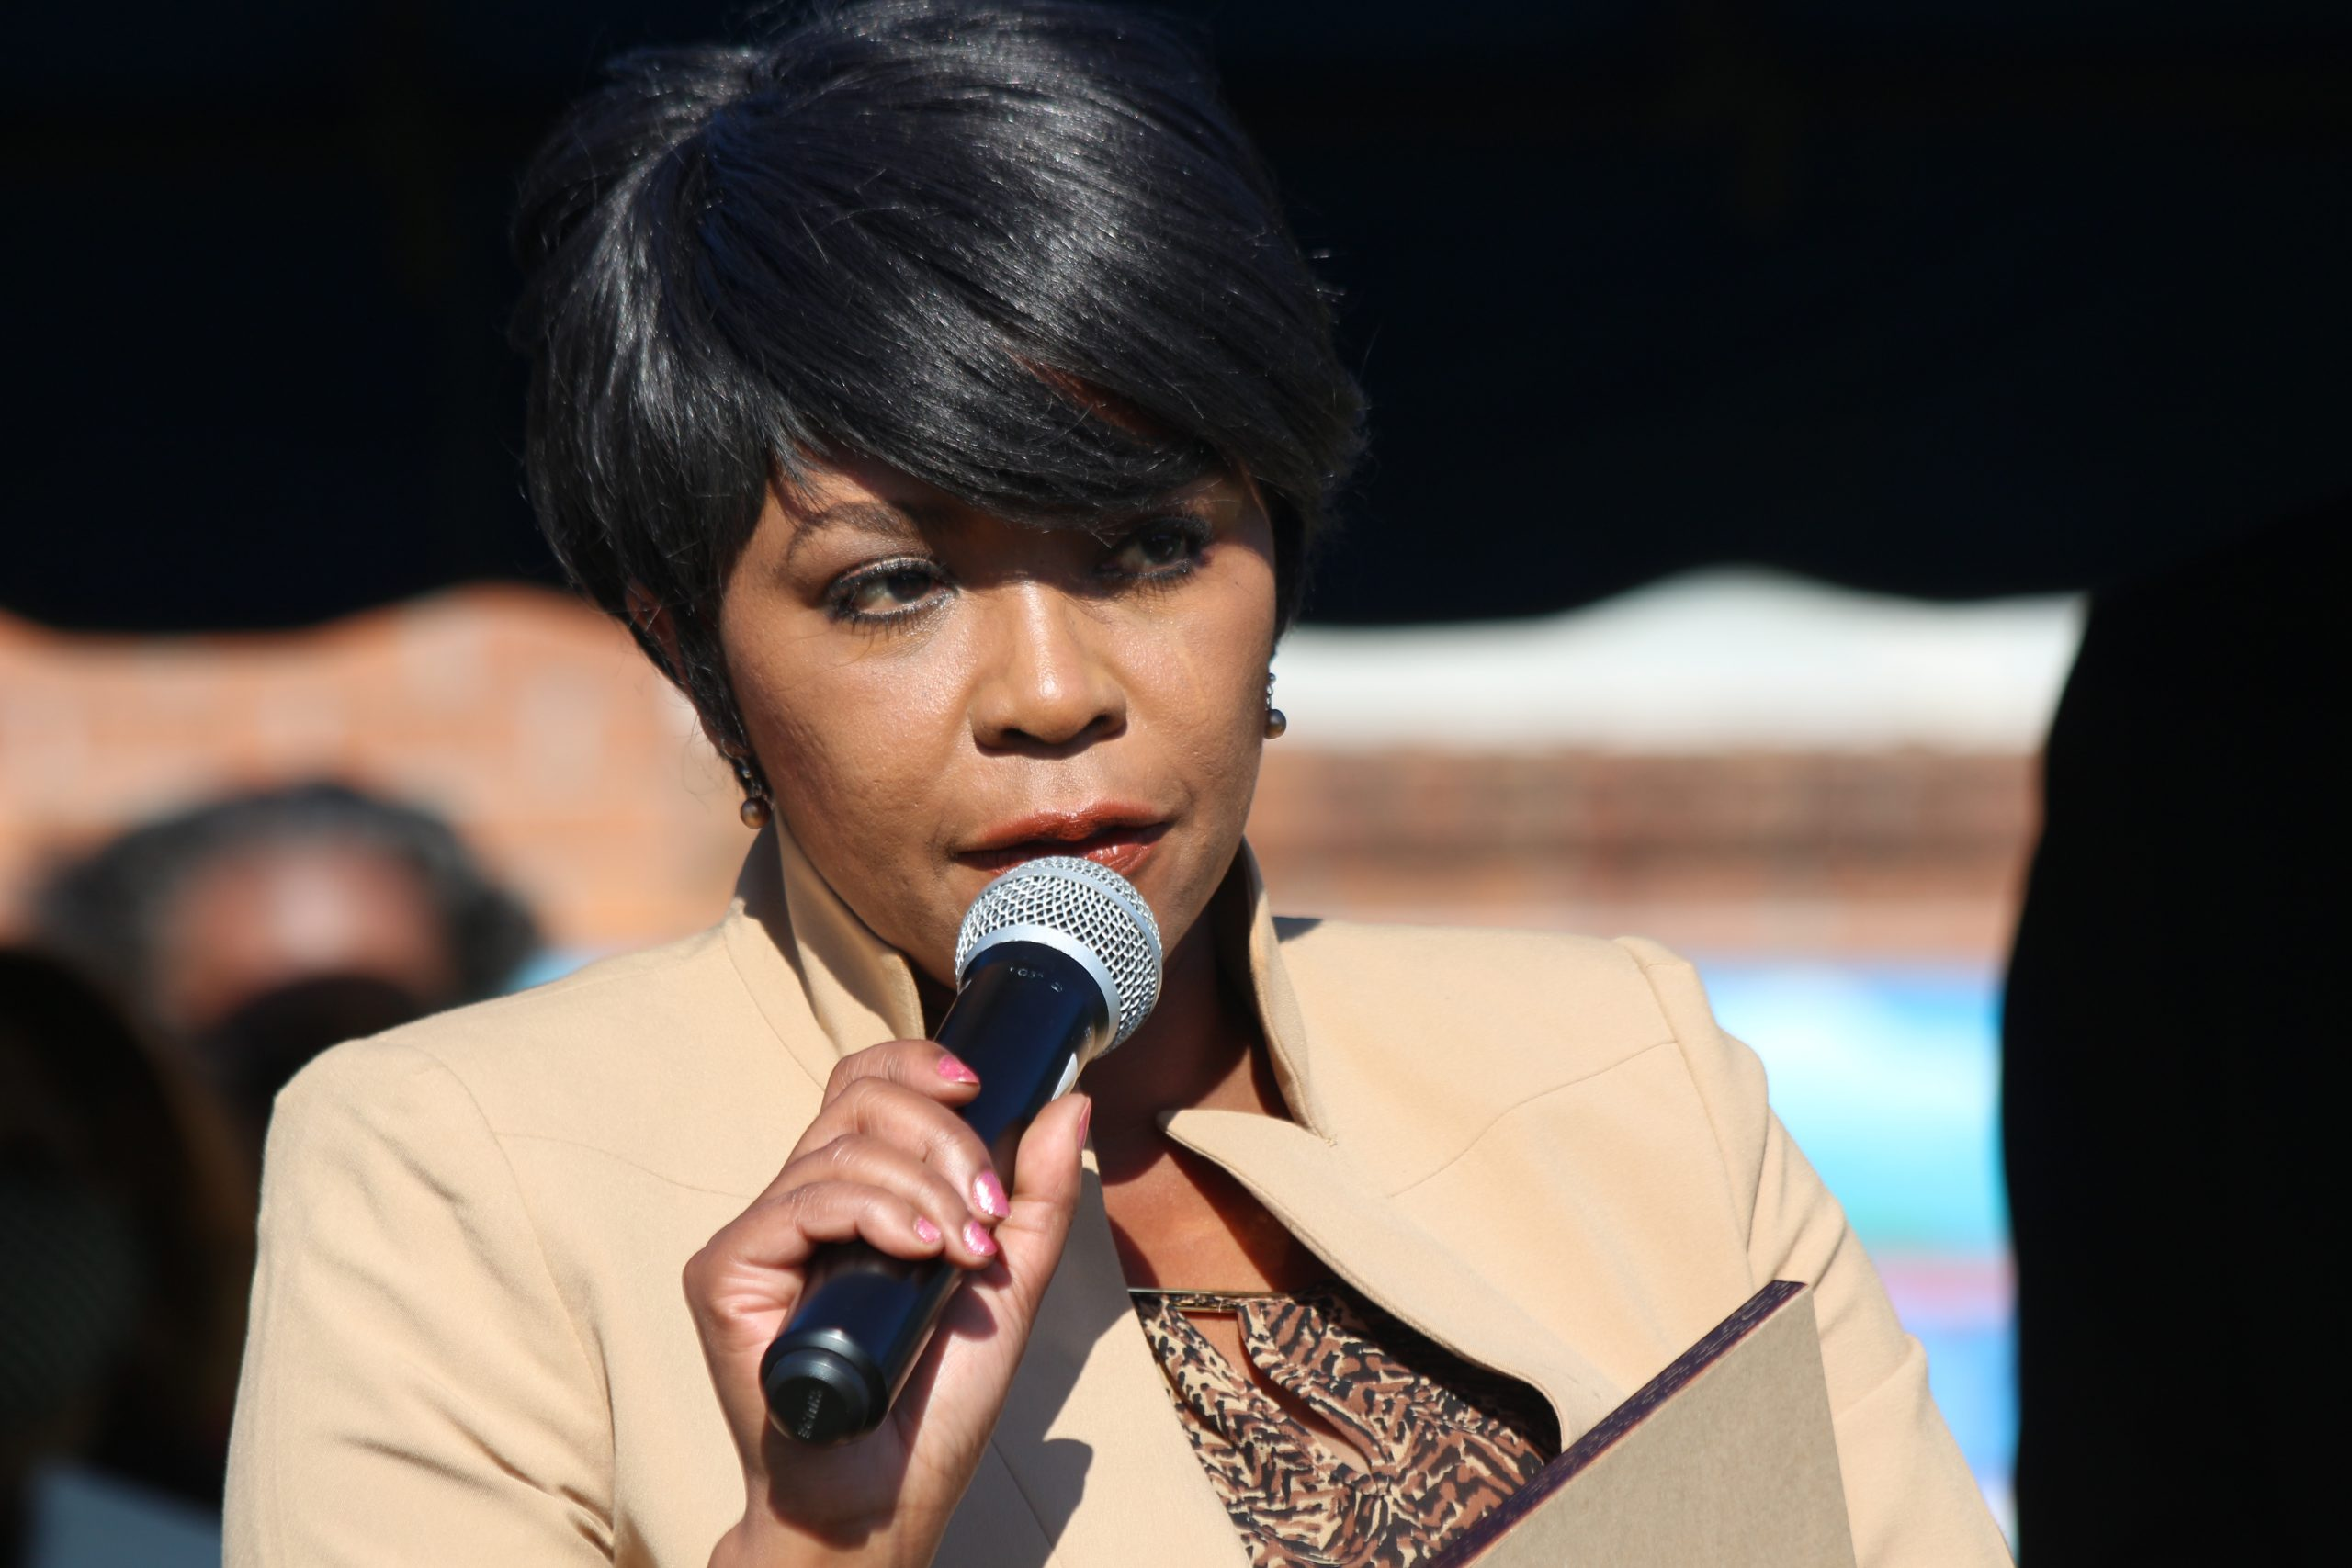 Woman Speaking over microphone